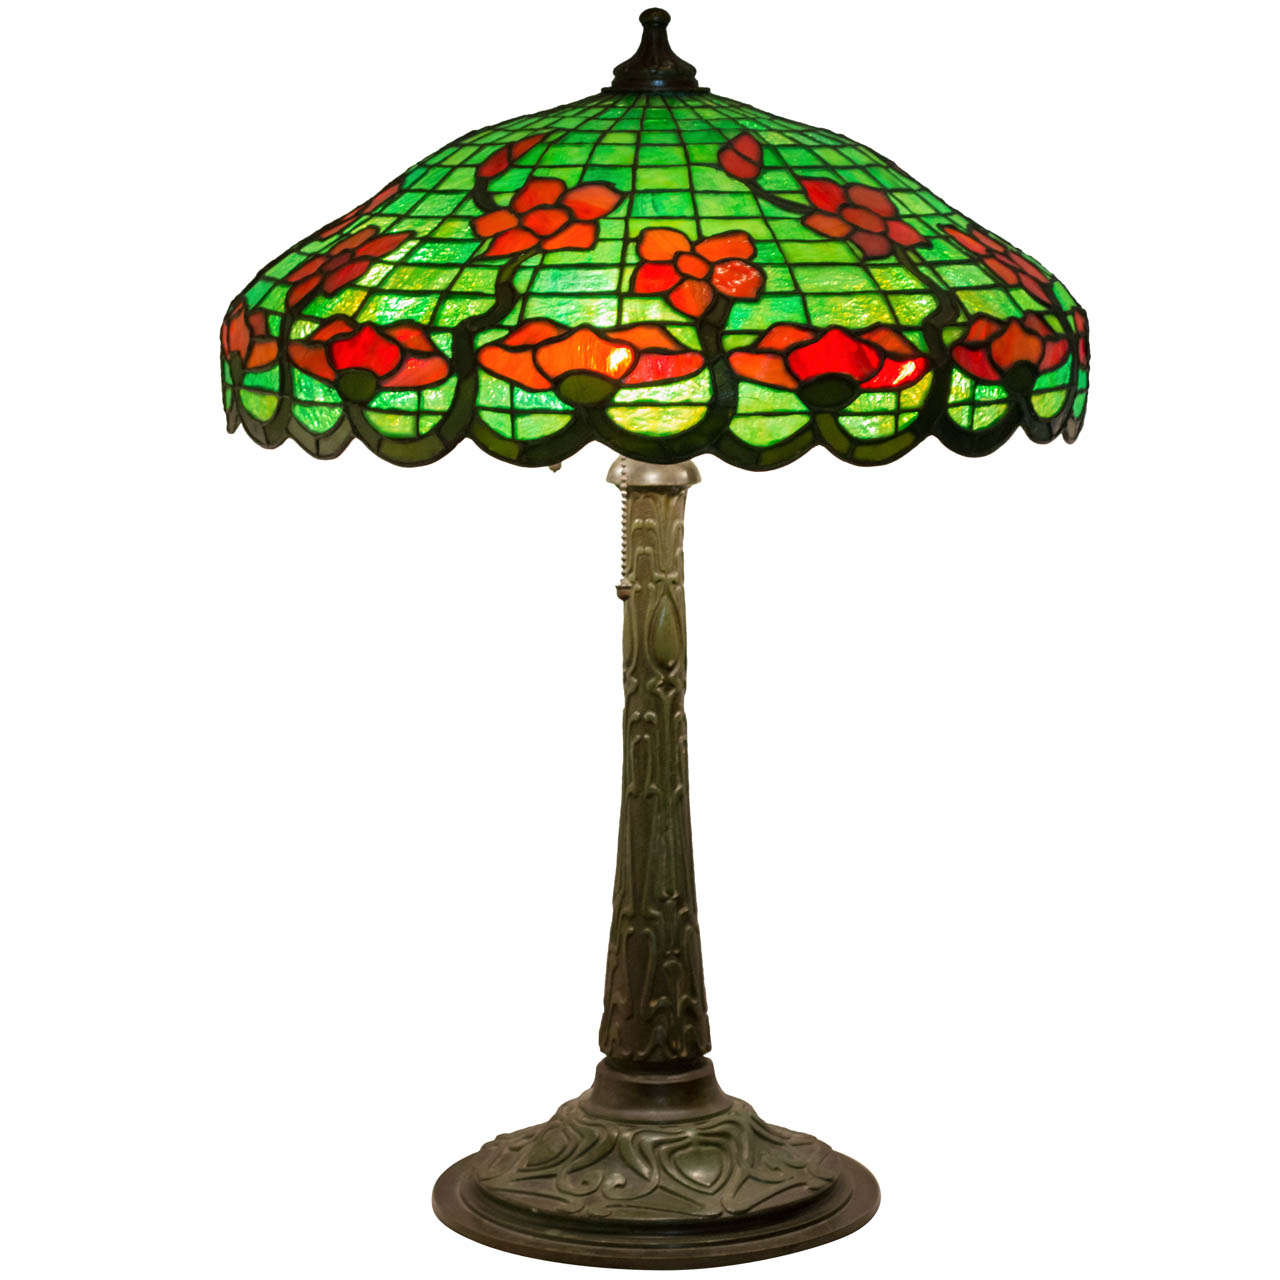 Leaded glass table lamp by gorham at 1stdibs leaded glass table lamp by gorham for sale aloadofball Image collections